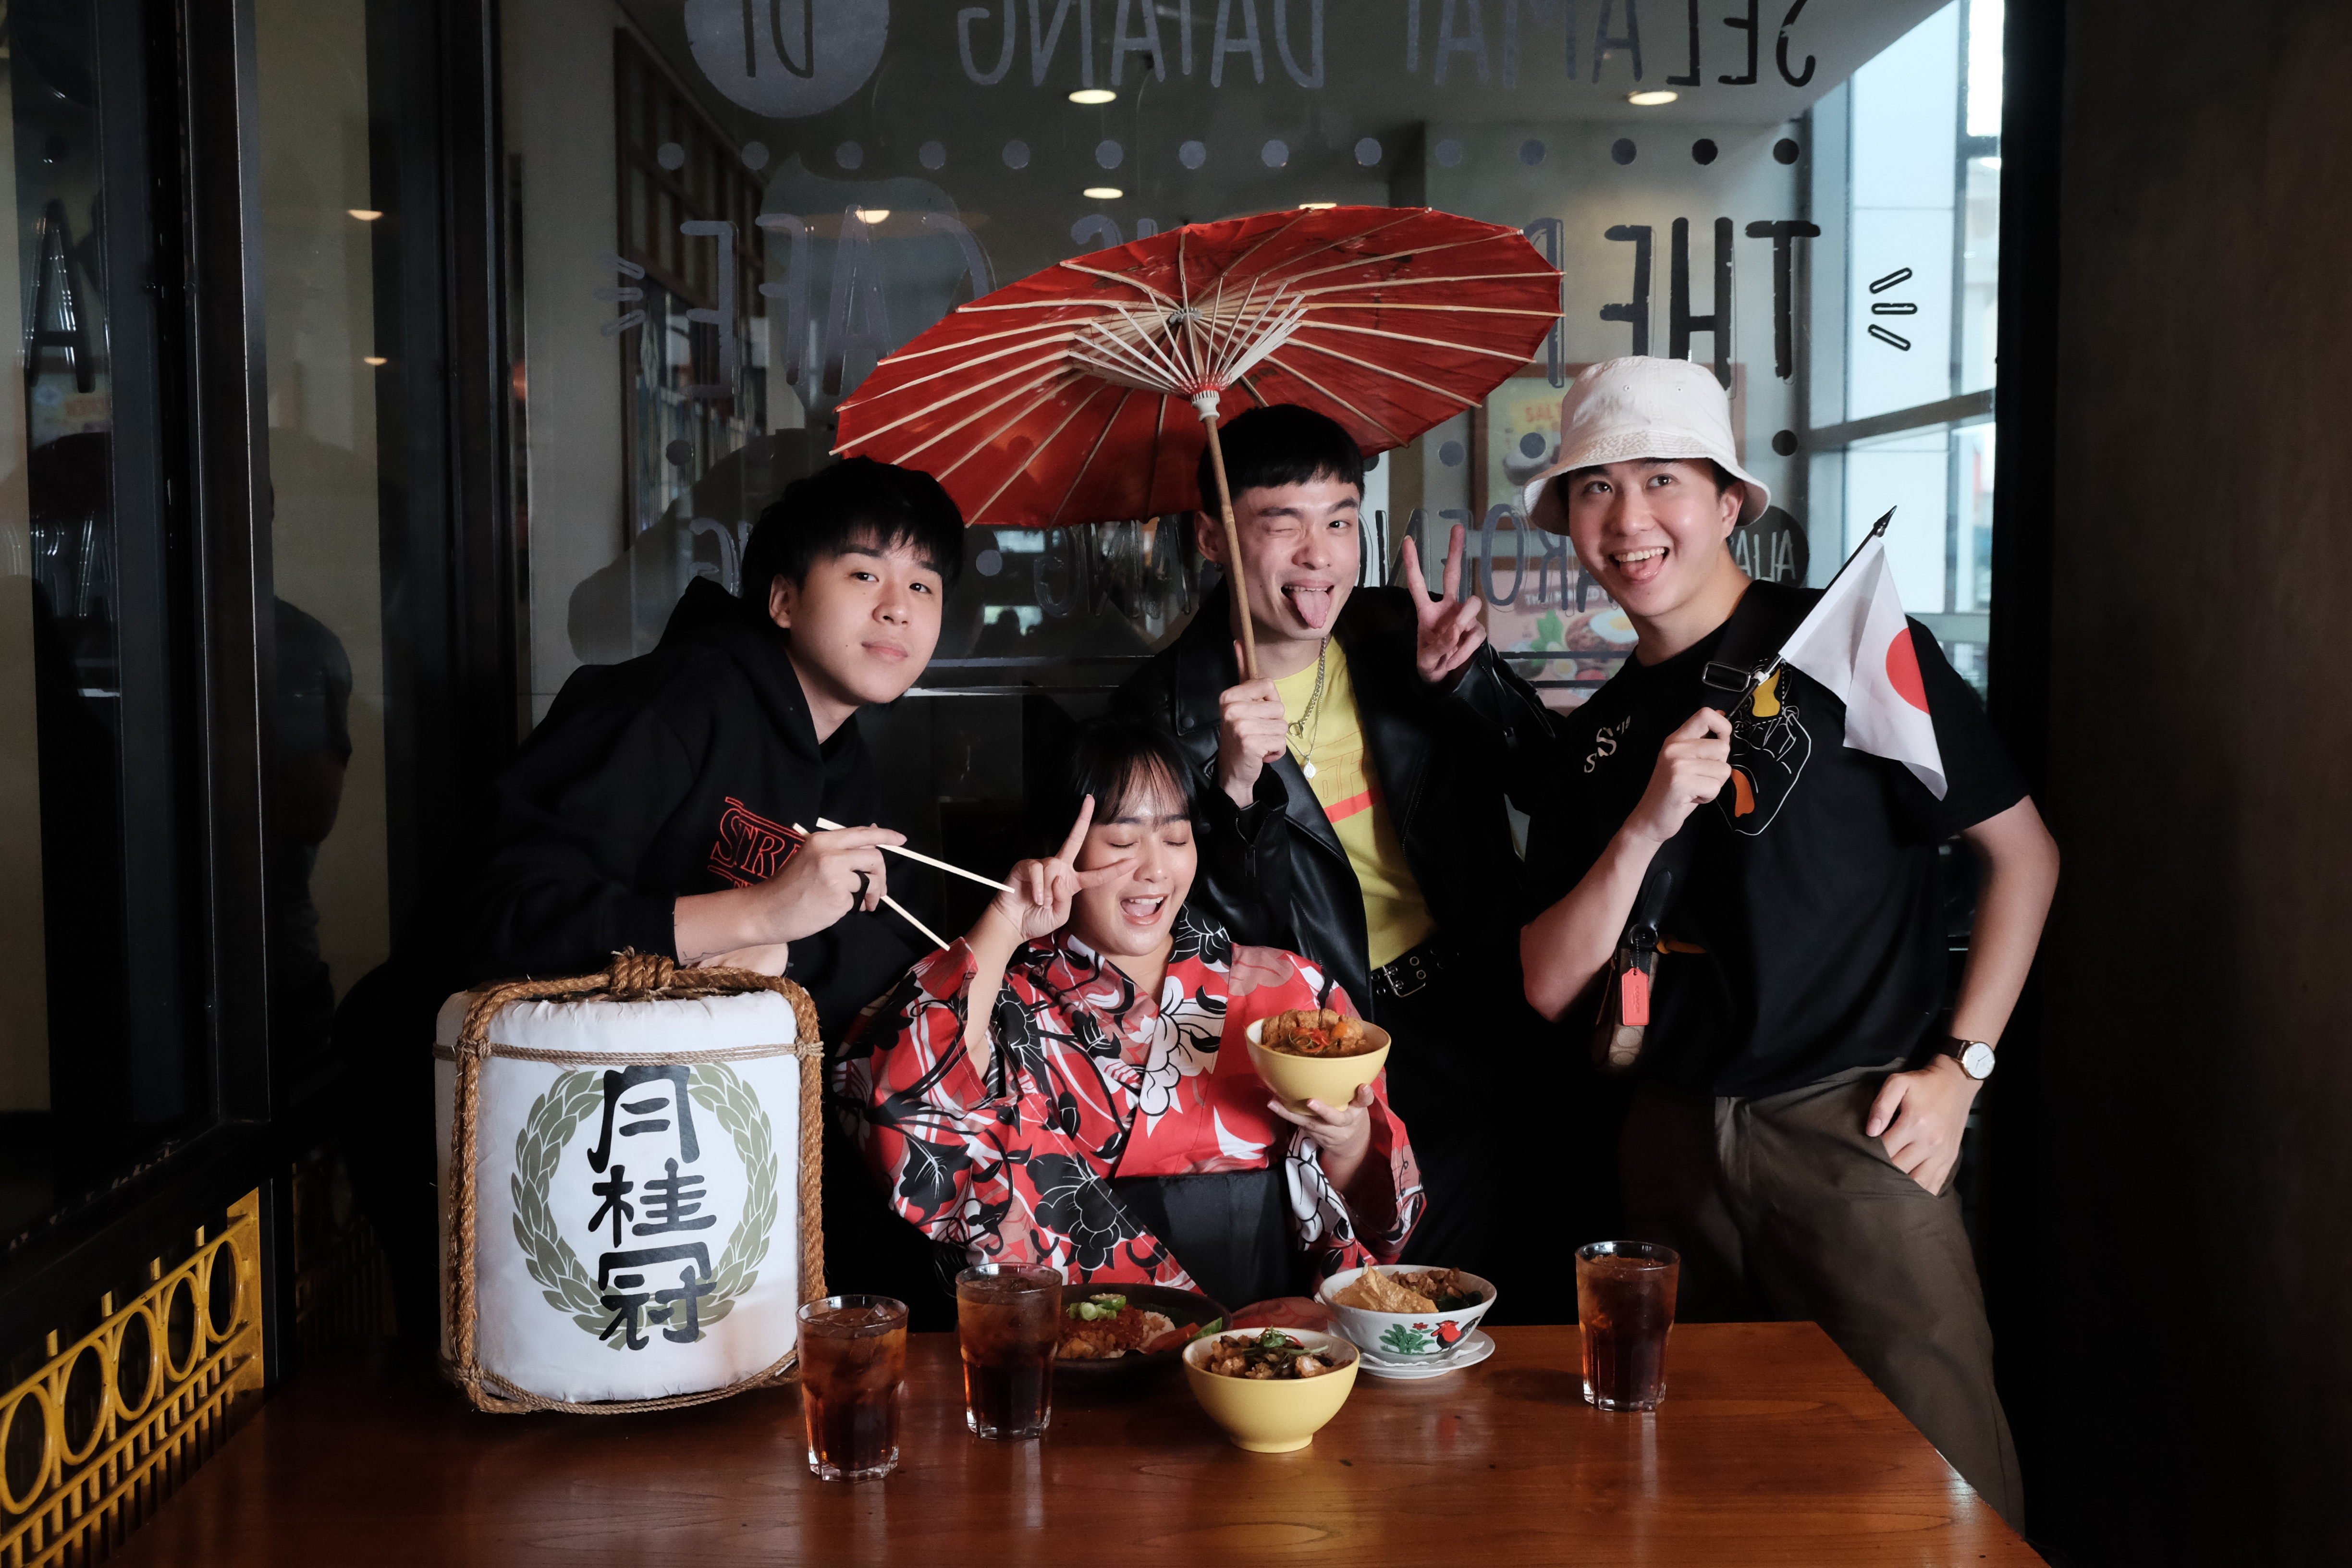 The People's Cafe IS GIVING OUT FREE TICKETS TO TOKYO.  HERE'S HOW YOU CAN ENJOY THE CITY!